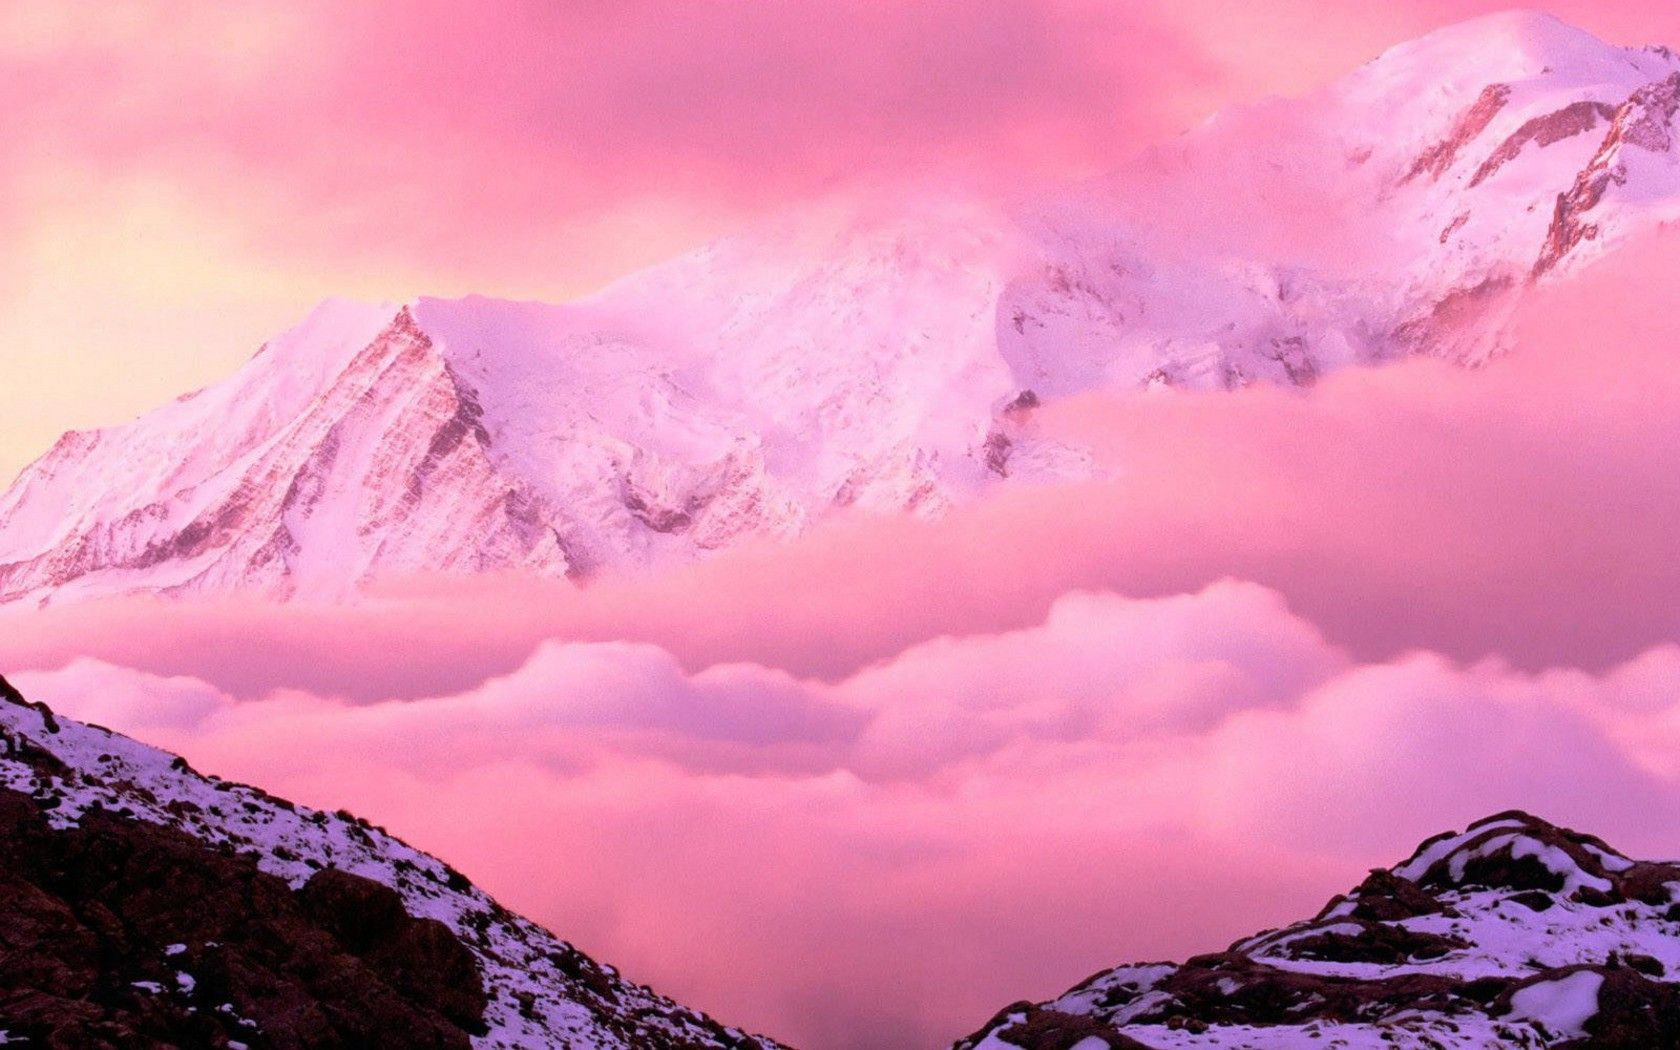 Fondos De Pantalla De Montanas De Color Rosa Tamano 1400x900 Pink Mountains Pink Nature Landscape Wallpaper